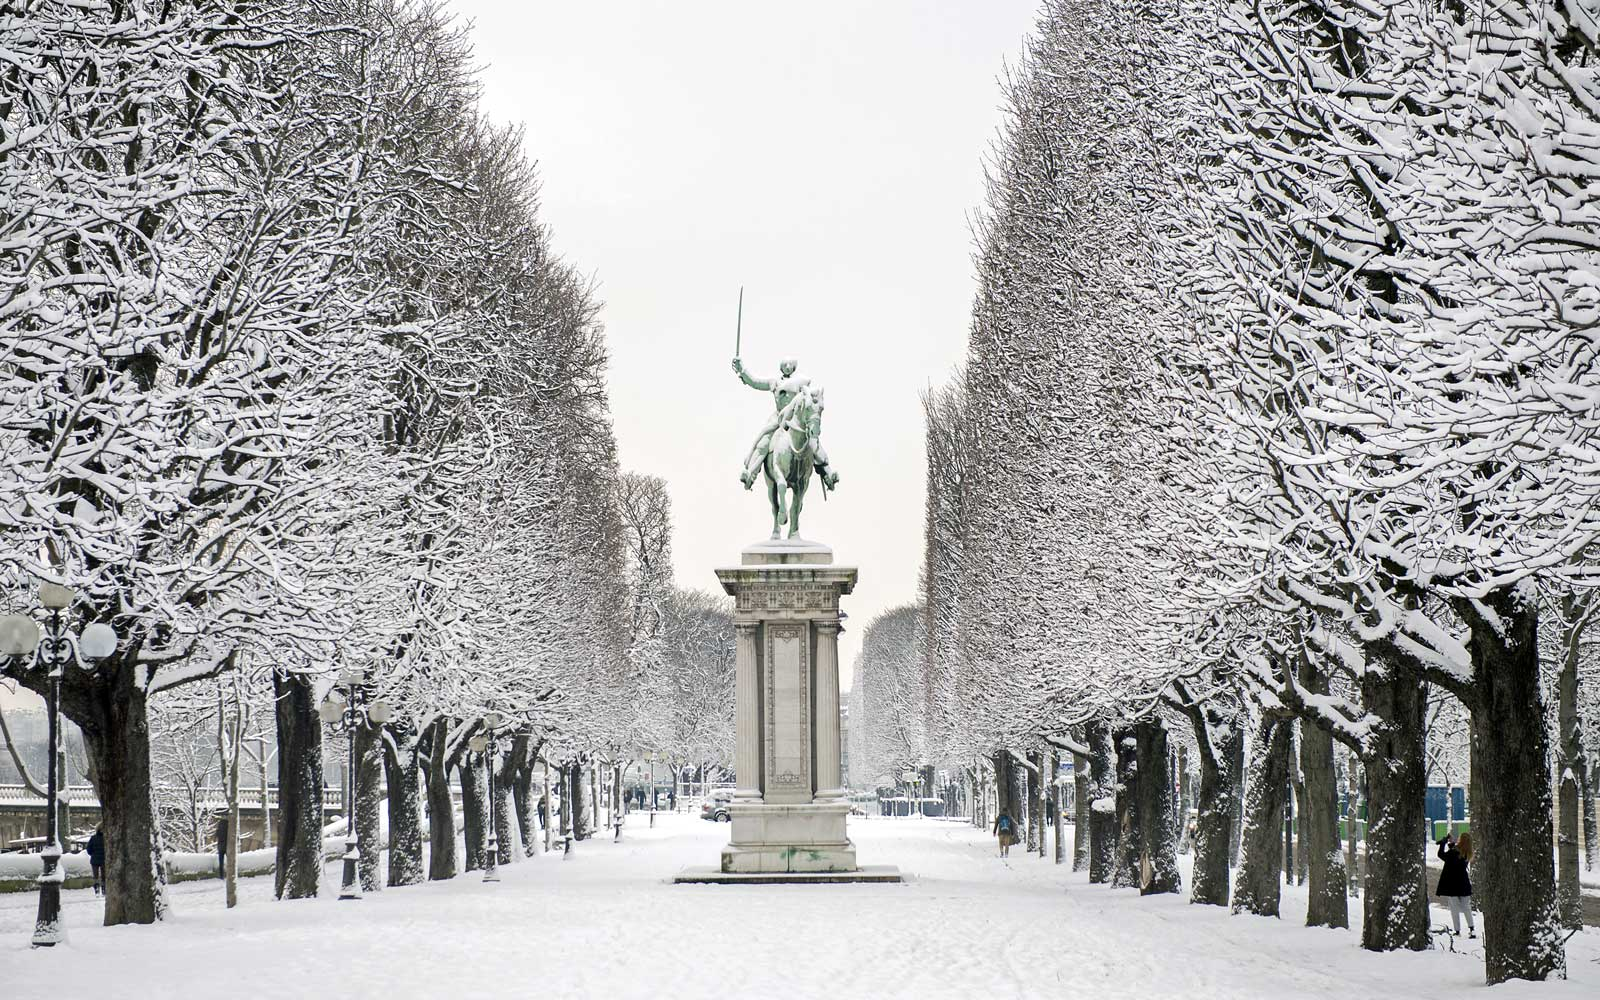 Paris' Cours la Reine covered in snow.